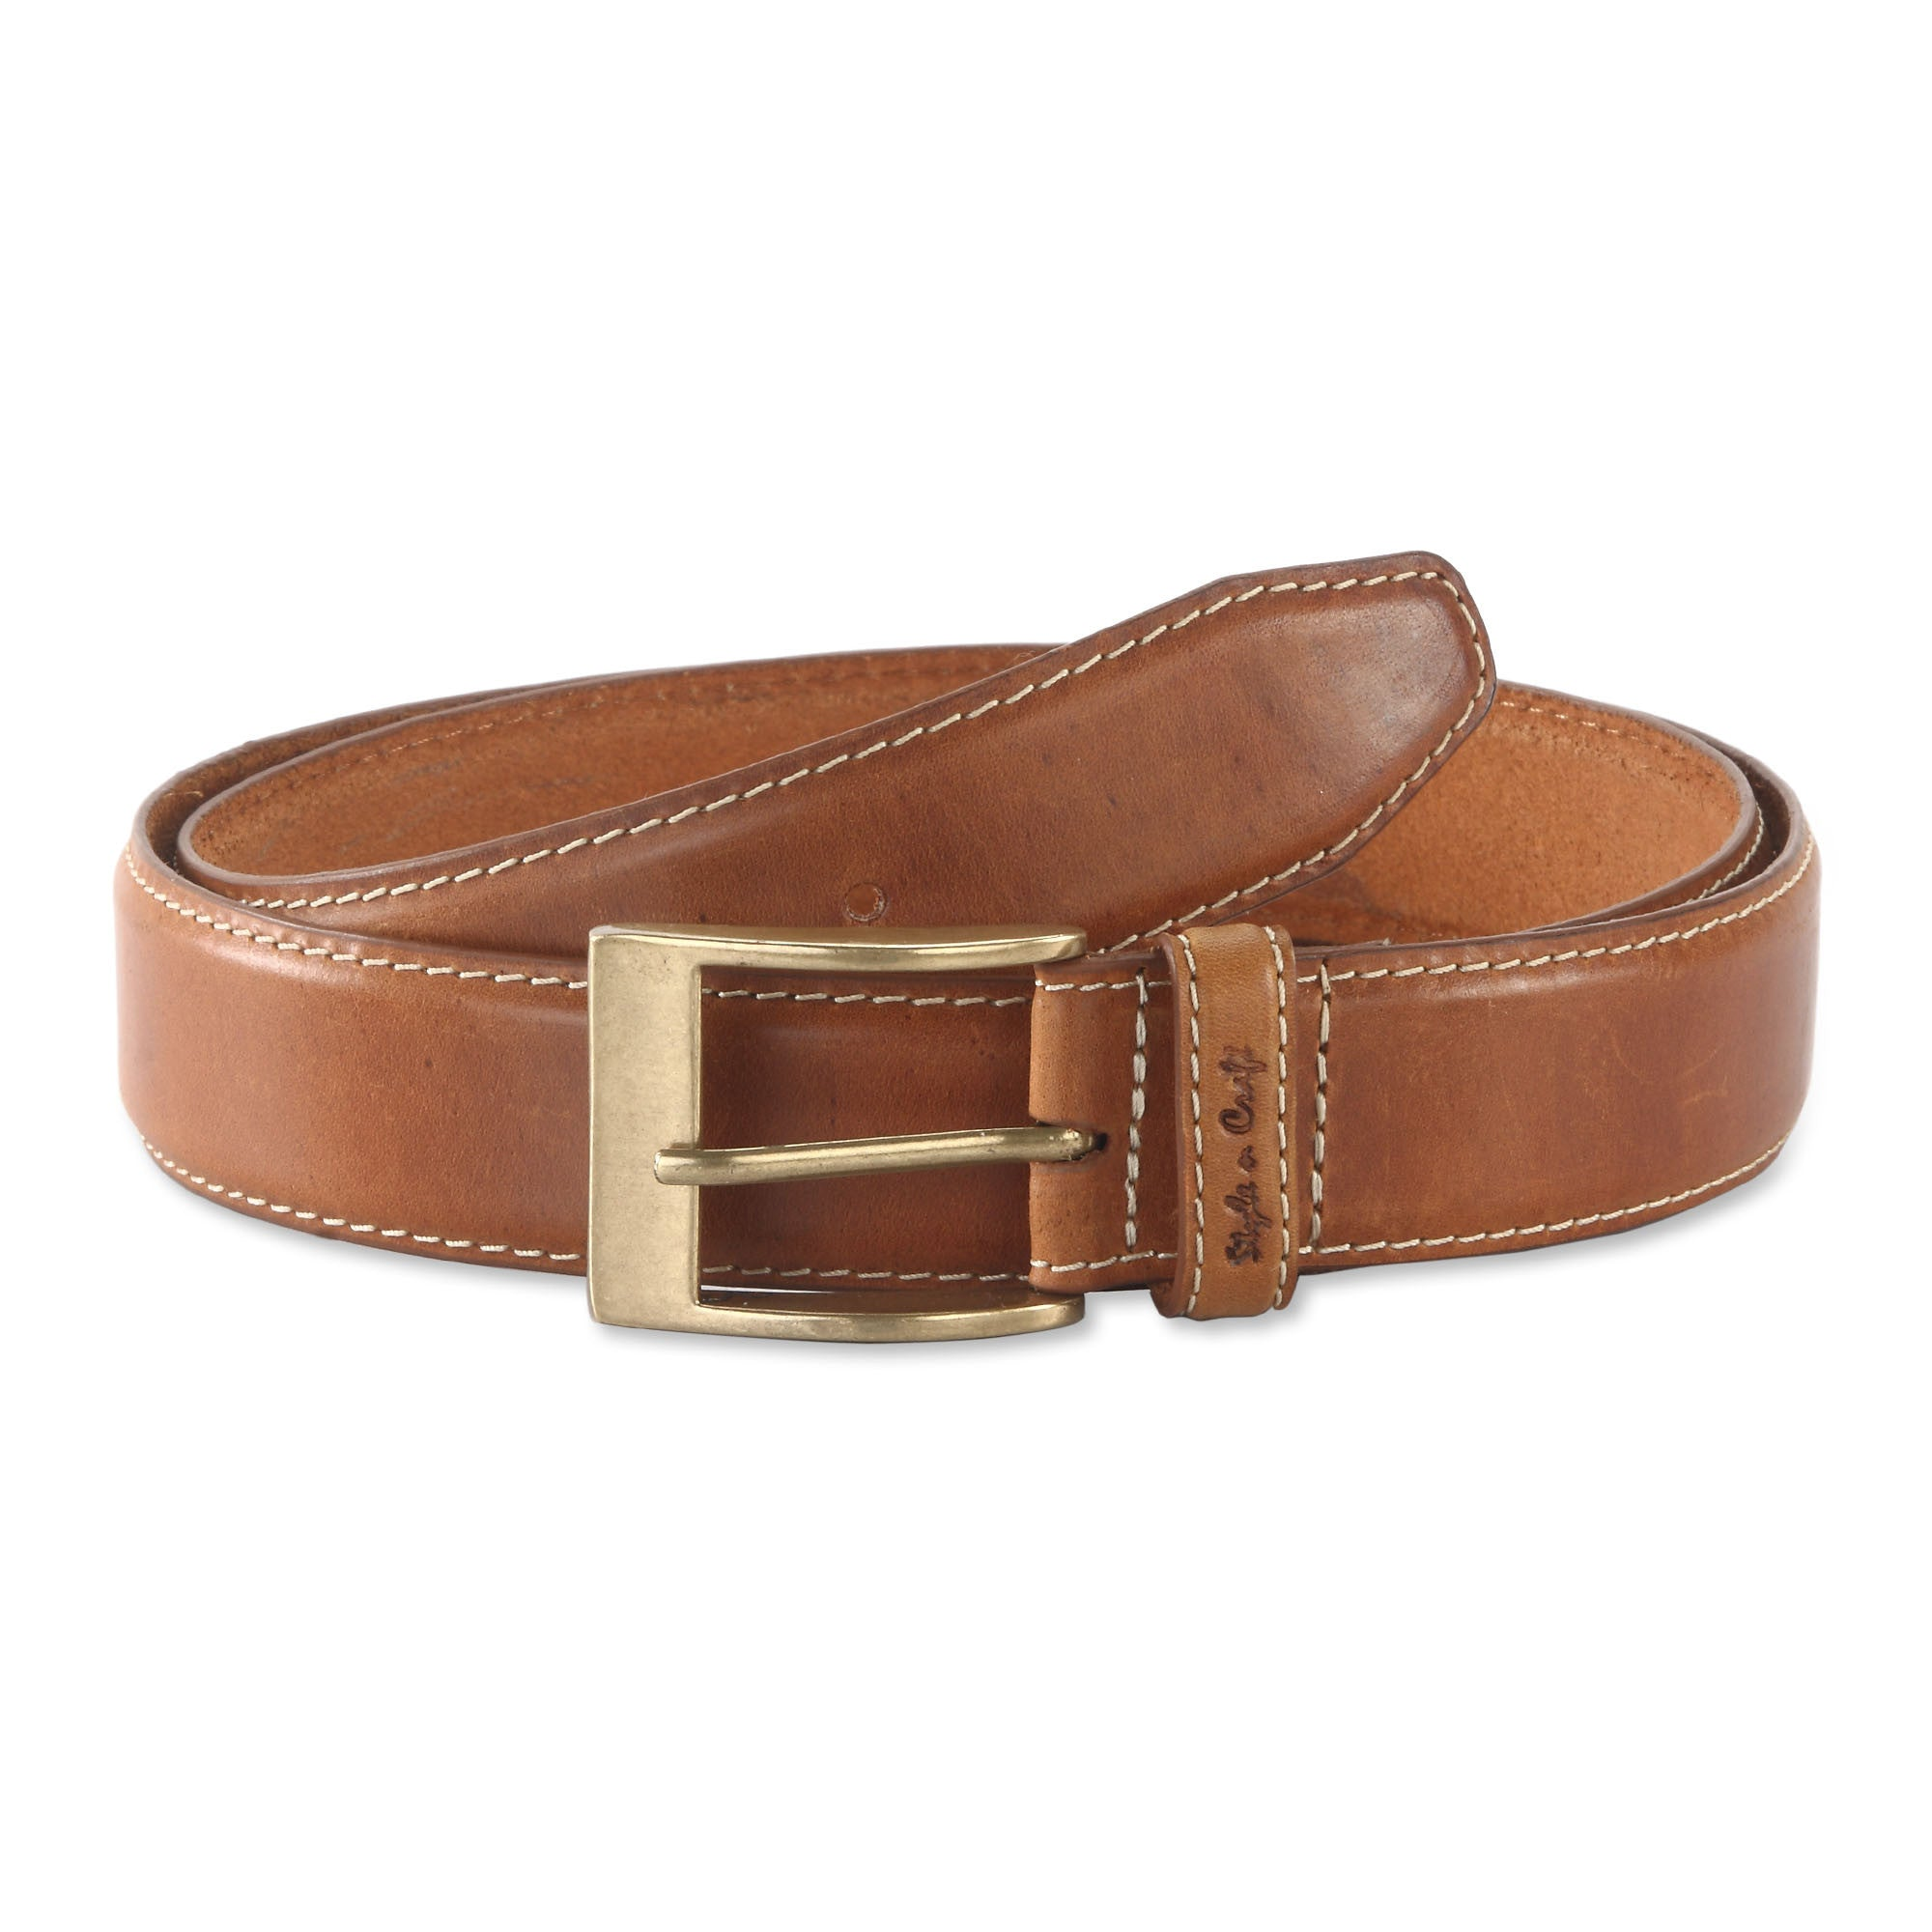 Style N Craft 391901-M One and a Half Inch Leather Belt in Tan Color at Sears.com